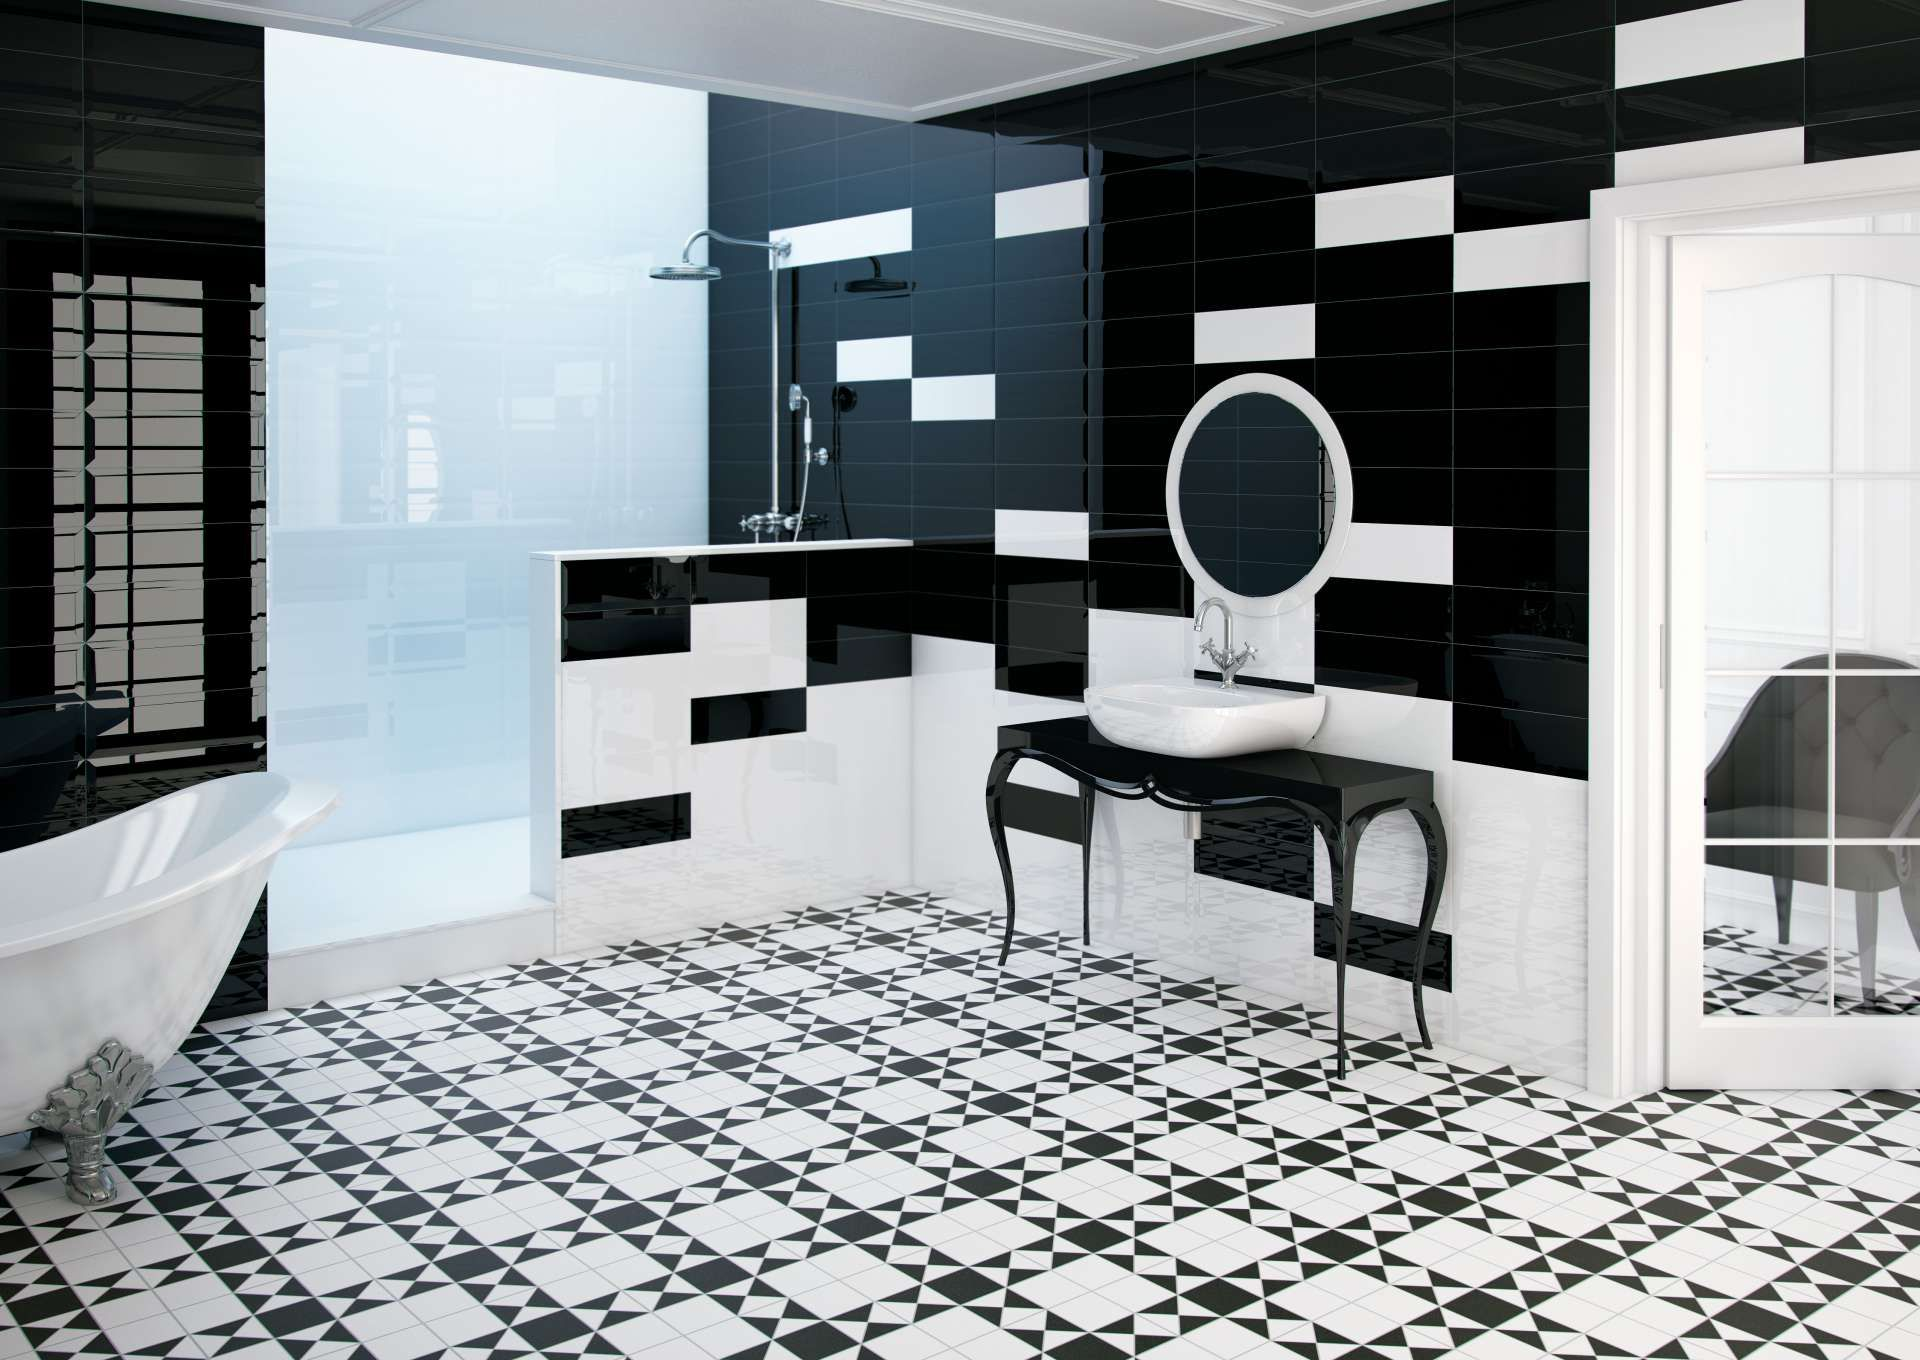 Glazed Porcelain Victorian Style Floor Tiles In 4 Colour Combinations A R9 Anti Slip Matt Finish Trend Setting And Versatile Tile Collection For